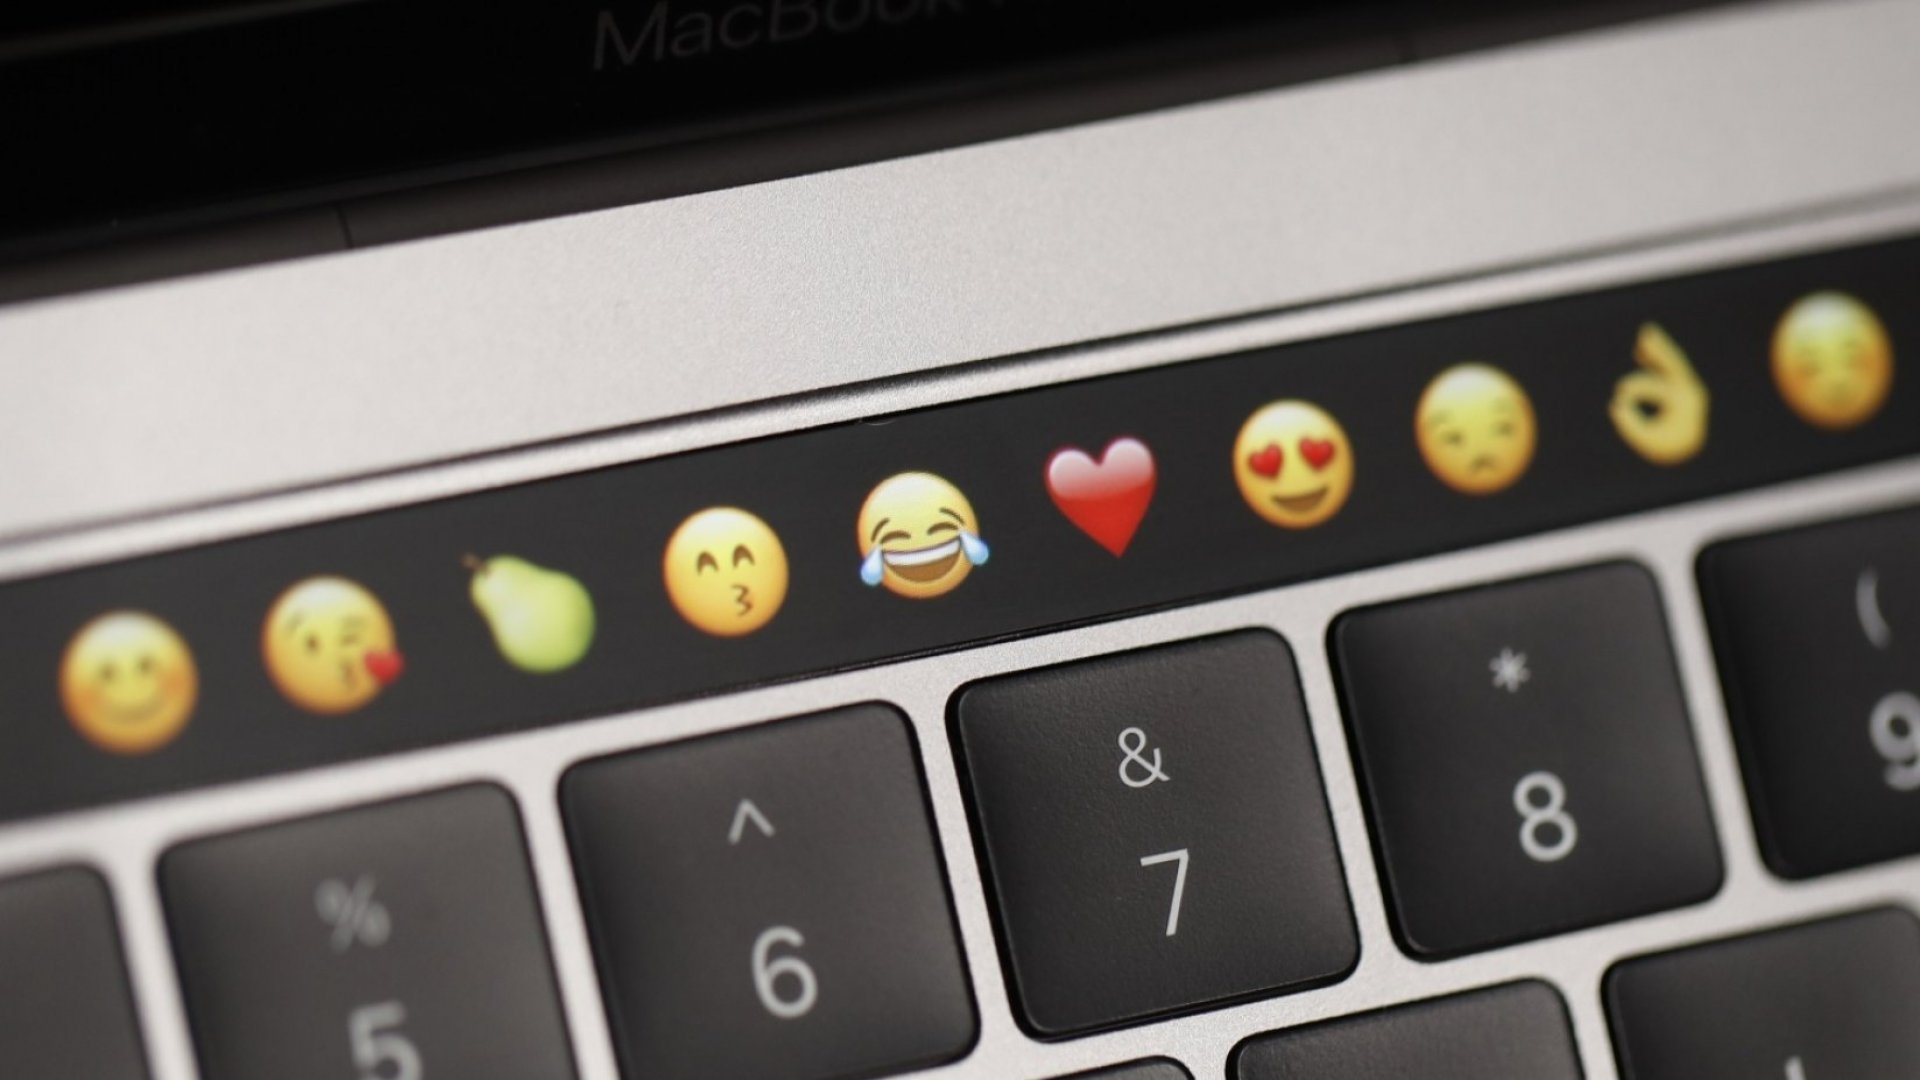 Want to Increase Your Digital Emotional Intelligence? Experts Say It Comes Down to How You Use Your Emojis